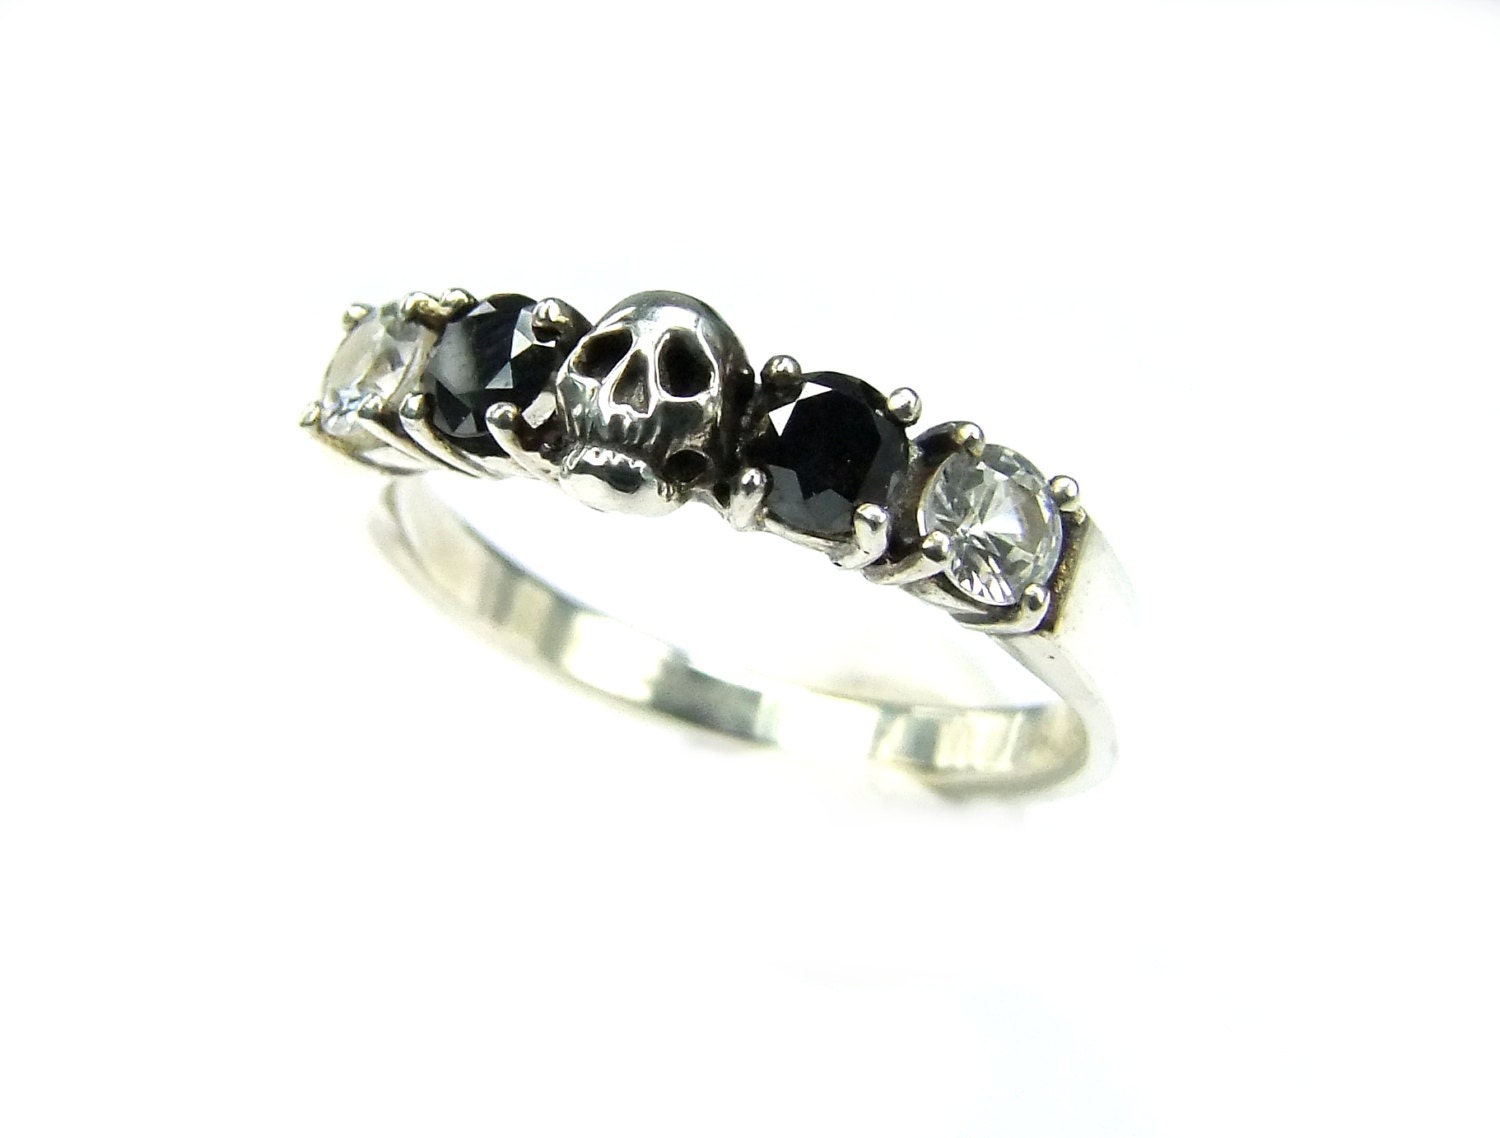 black diamond band mens skull wedding rings Skull Wedding Ring Black Diamond Sterling Engagement Ring Goth Psychobilly Wedding Band Wedding Set Jewel Ring All Sizes